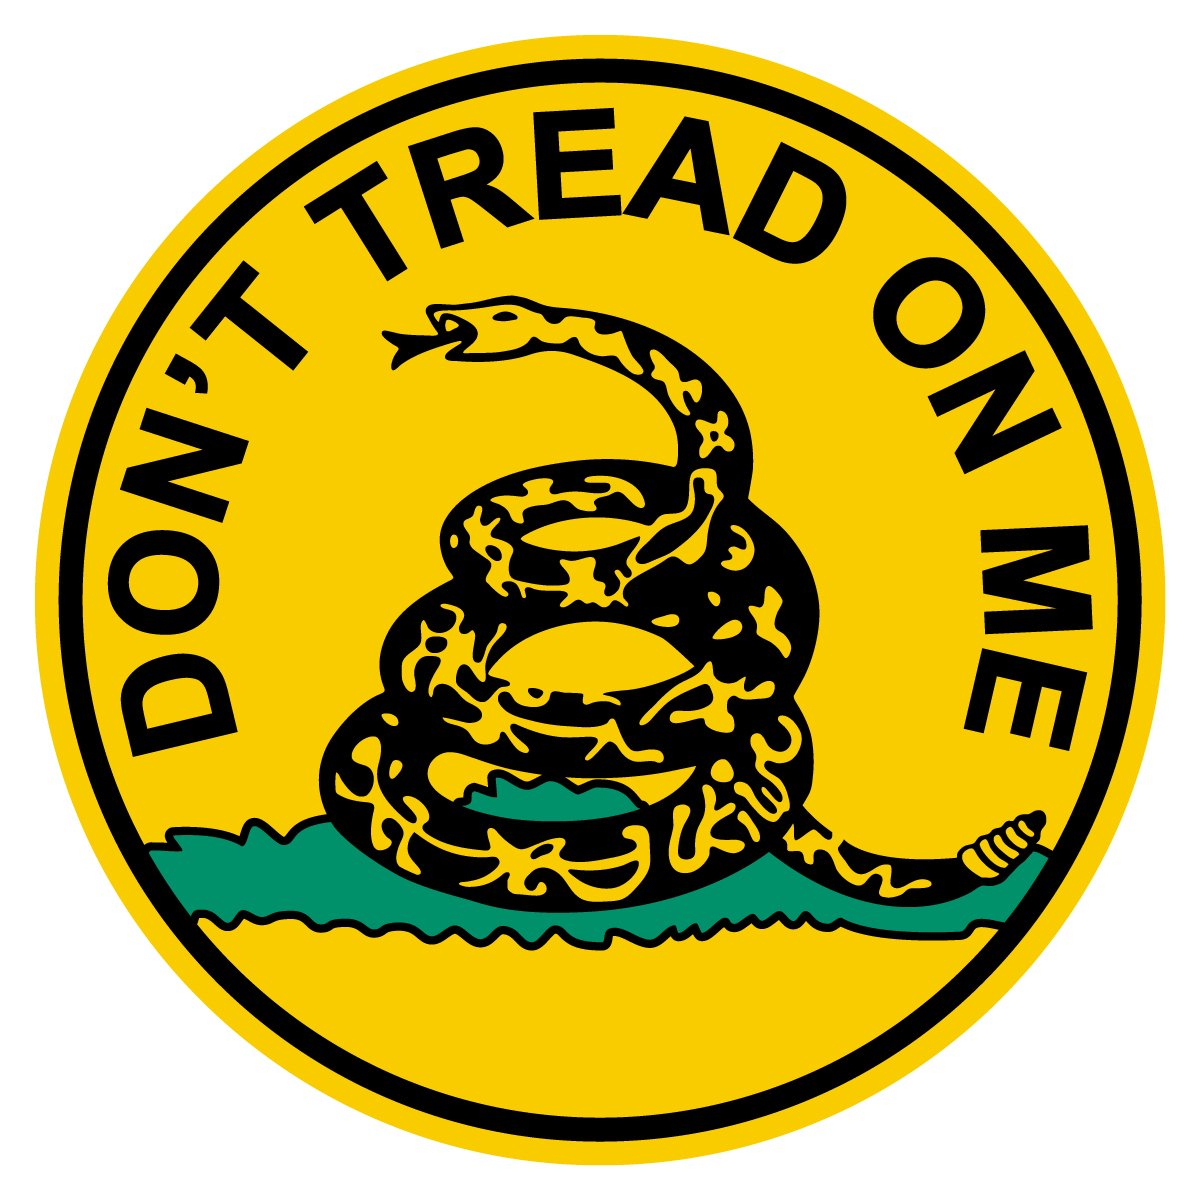 Don't Tread On Me Small Round Reflective Decal Sticker